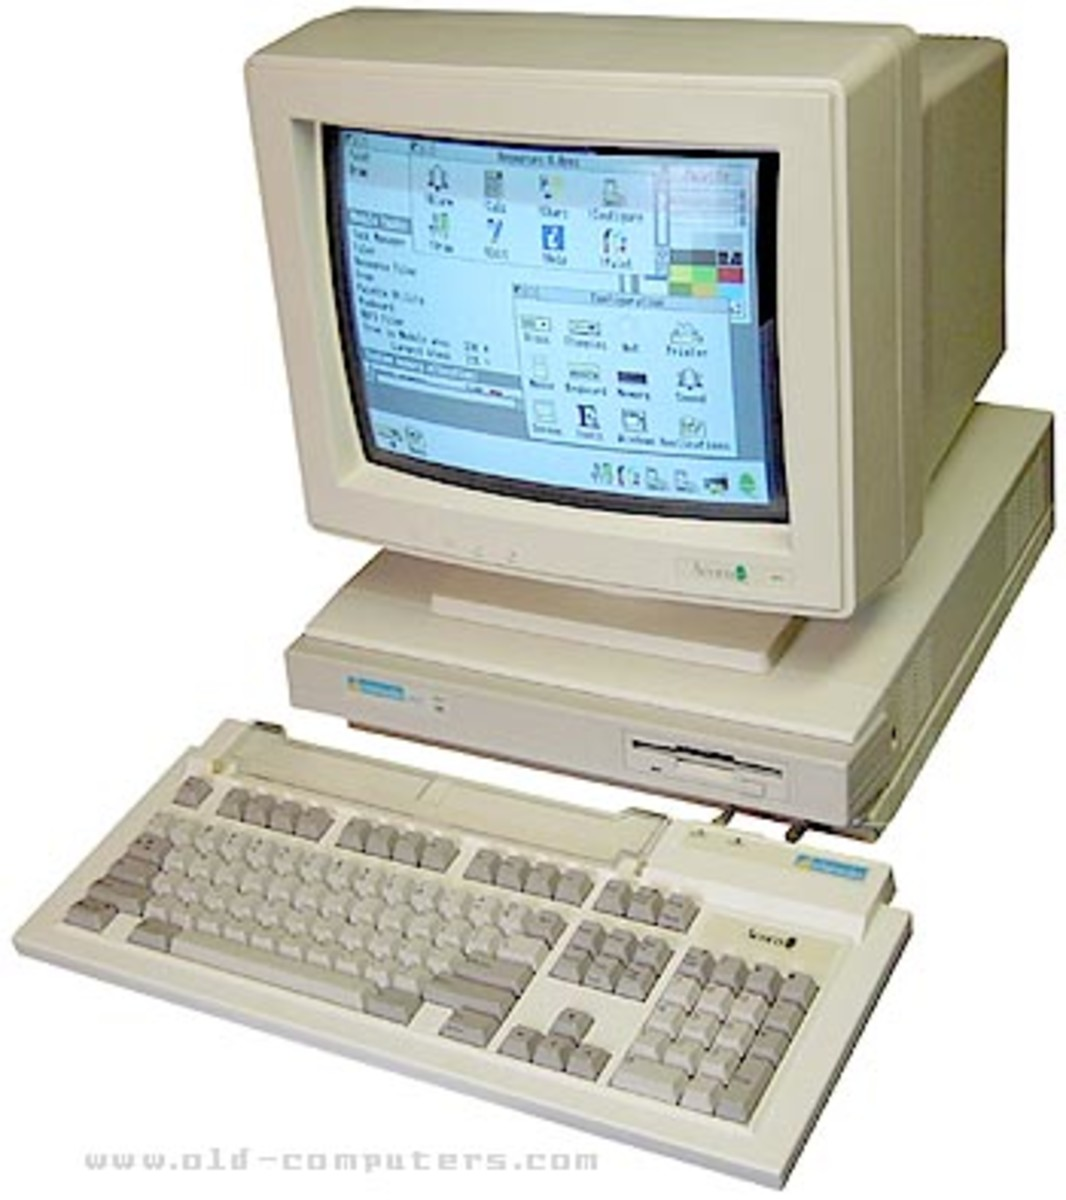 The Acorn Archimedes could be used for any purpose